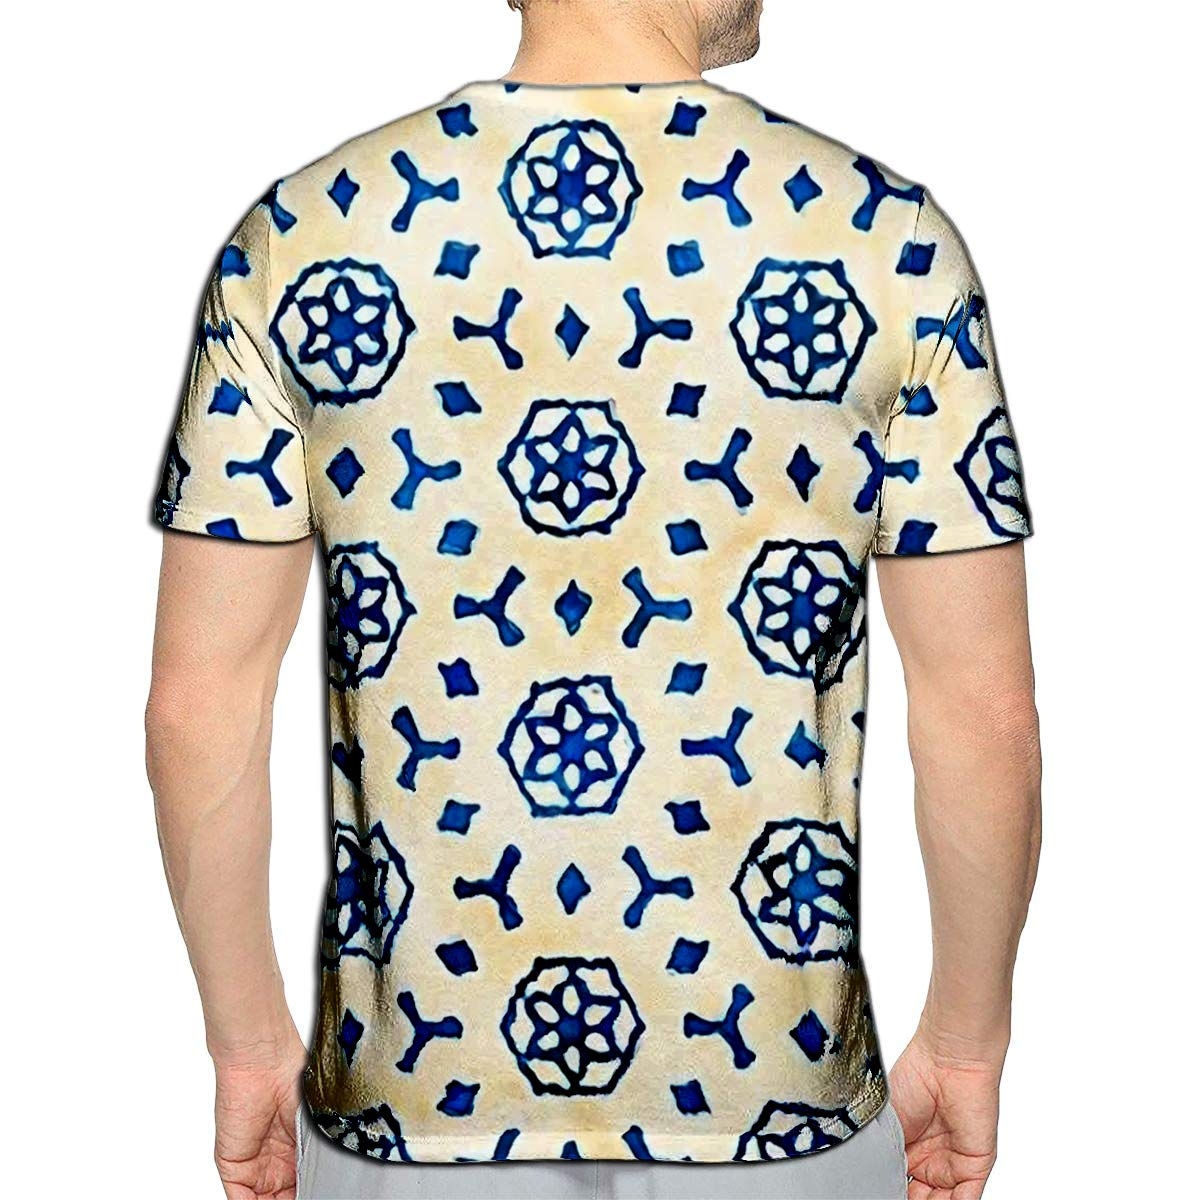 3D Printed T-Shirts Colibri and Flowers Creative Botanical Height Detailed Short Sleeve Tops Tees